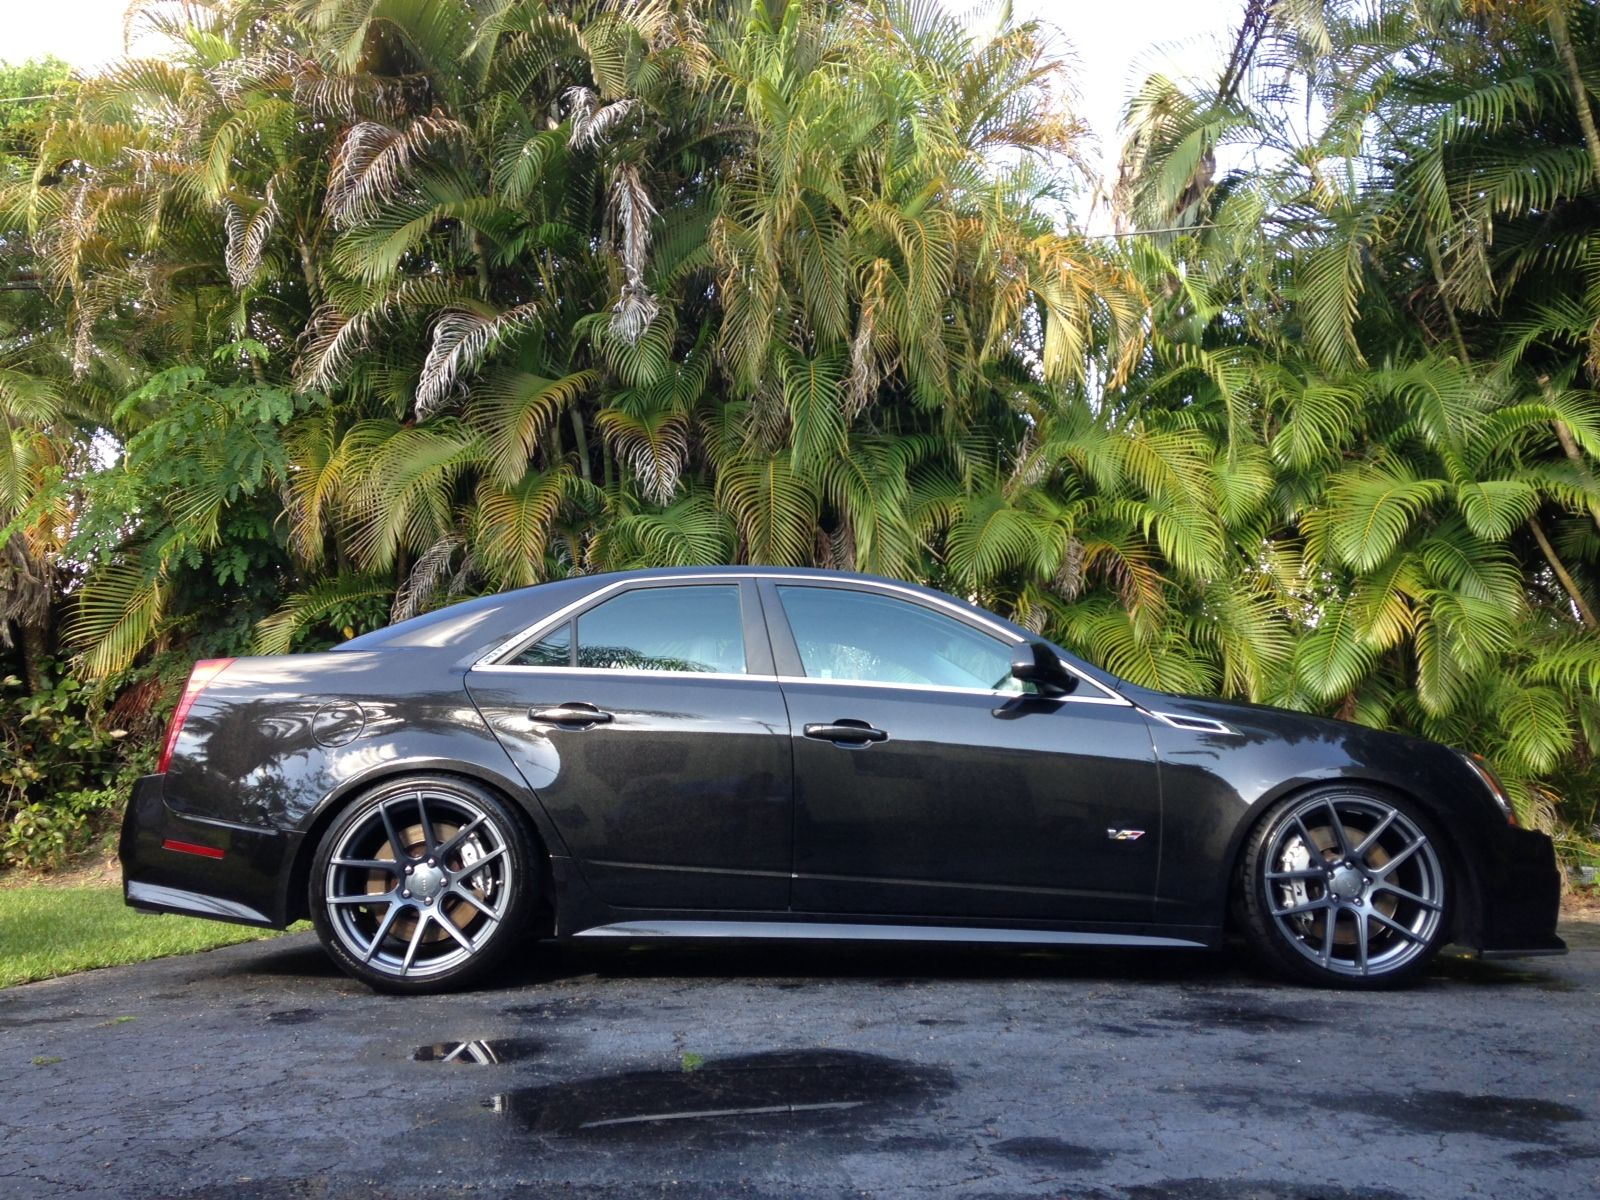 Image result for 2009 cadillac cts v spindles